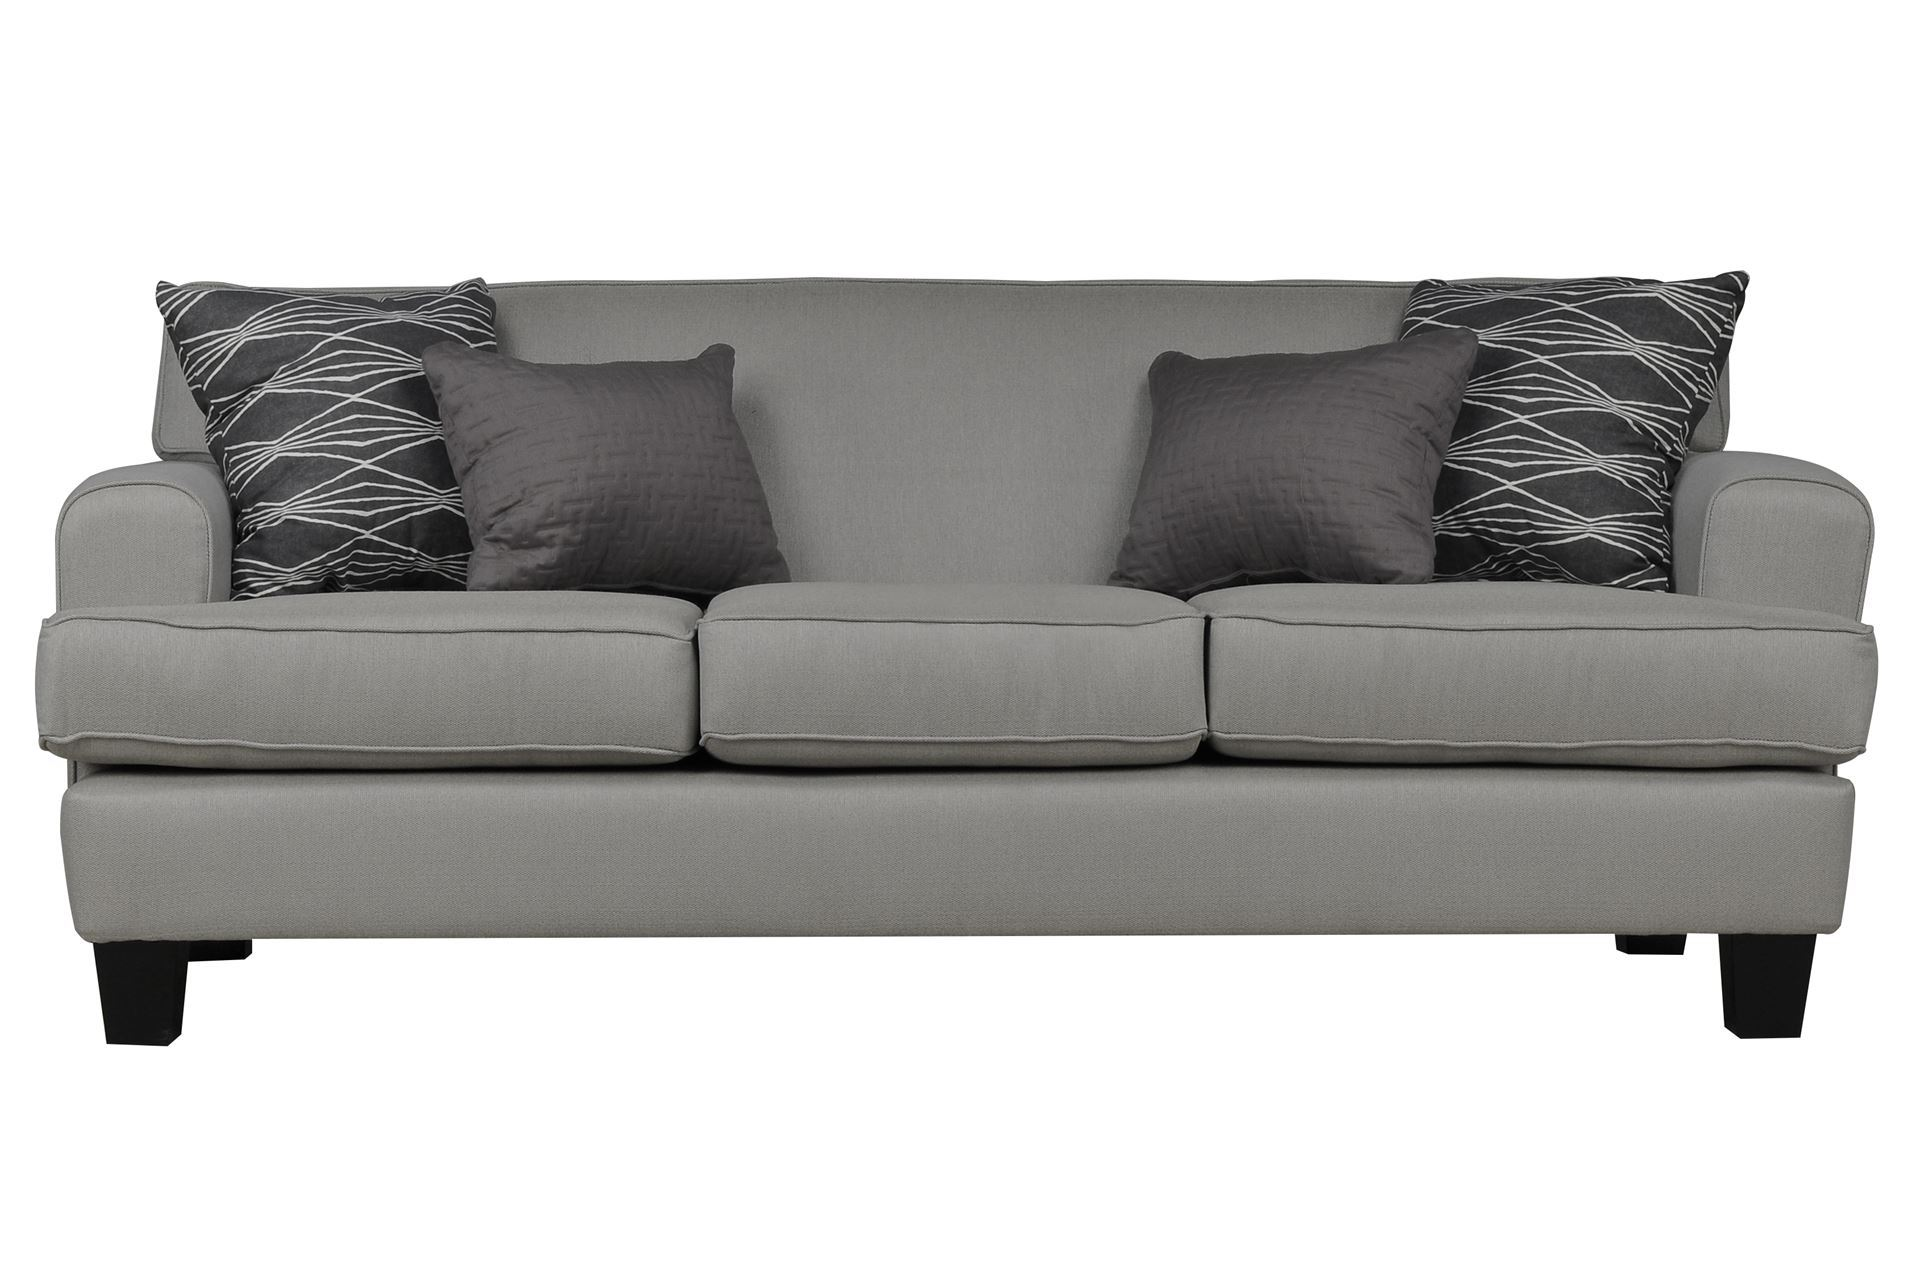 Dante sofa living spaces for Living spaces couches